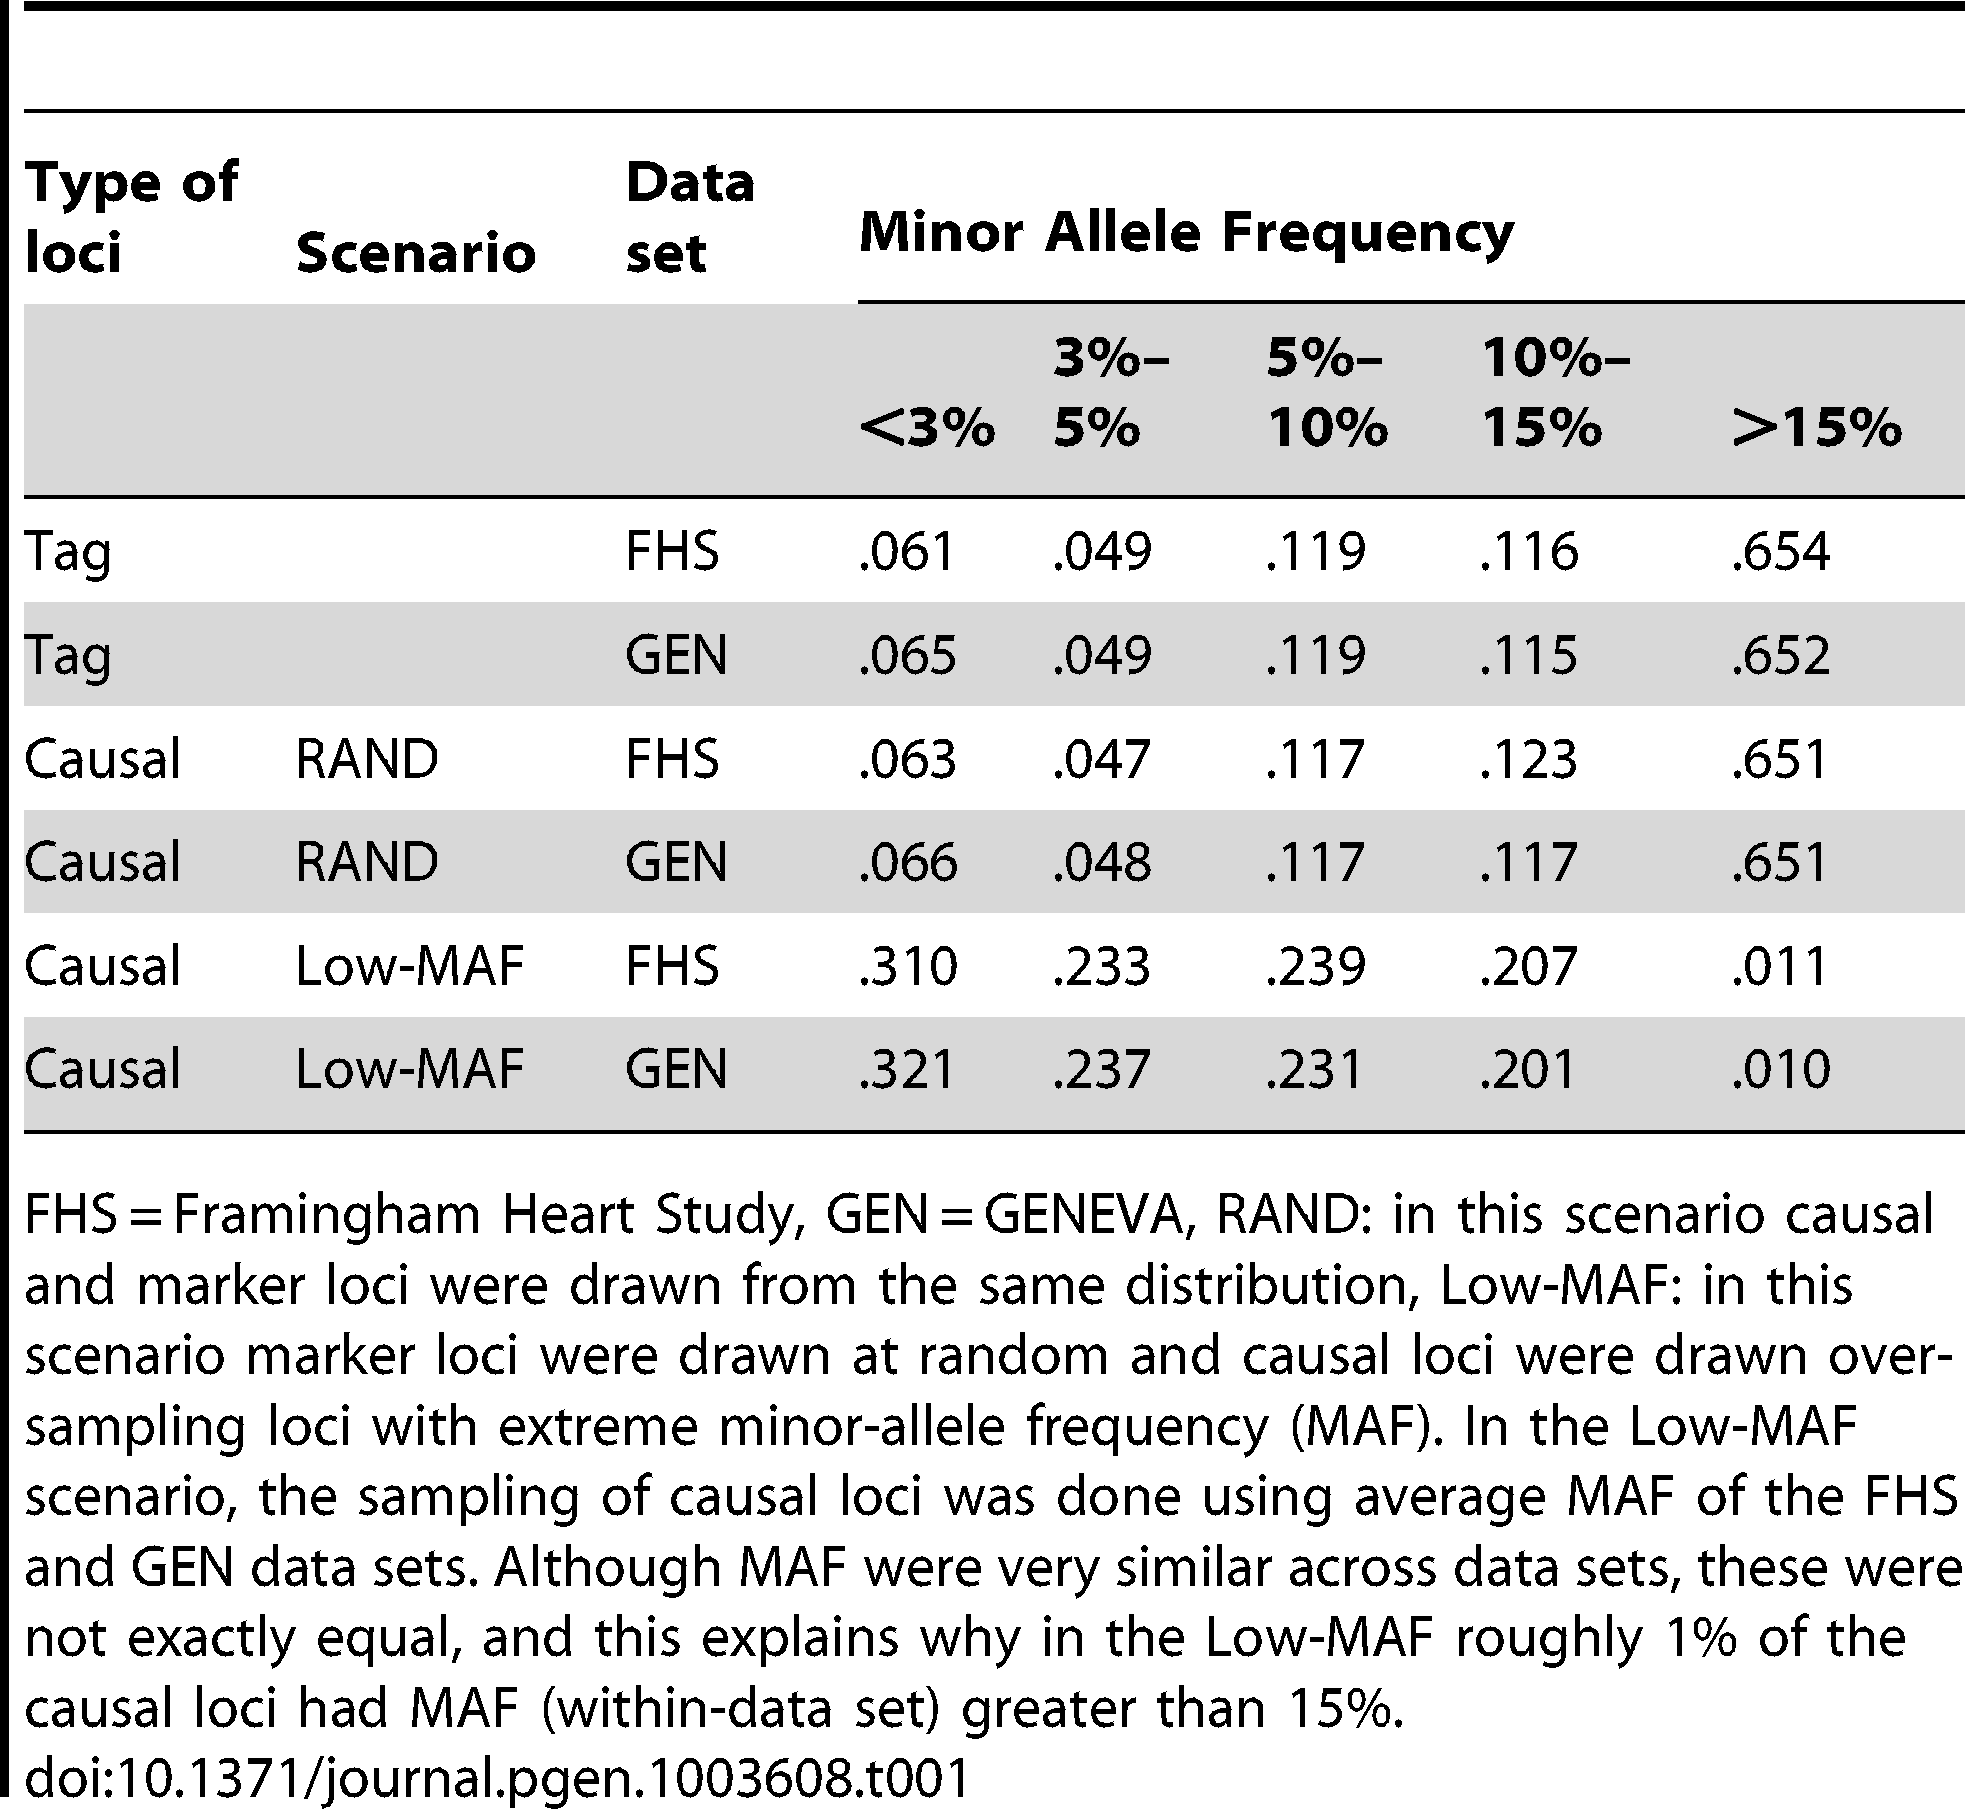 Percentage of loci by minor allele frequency (MAF), scenario and data set.